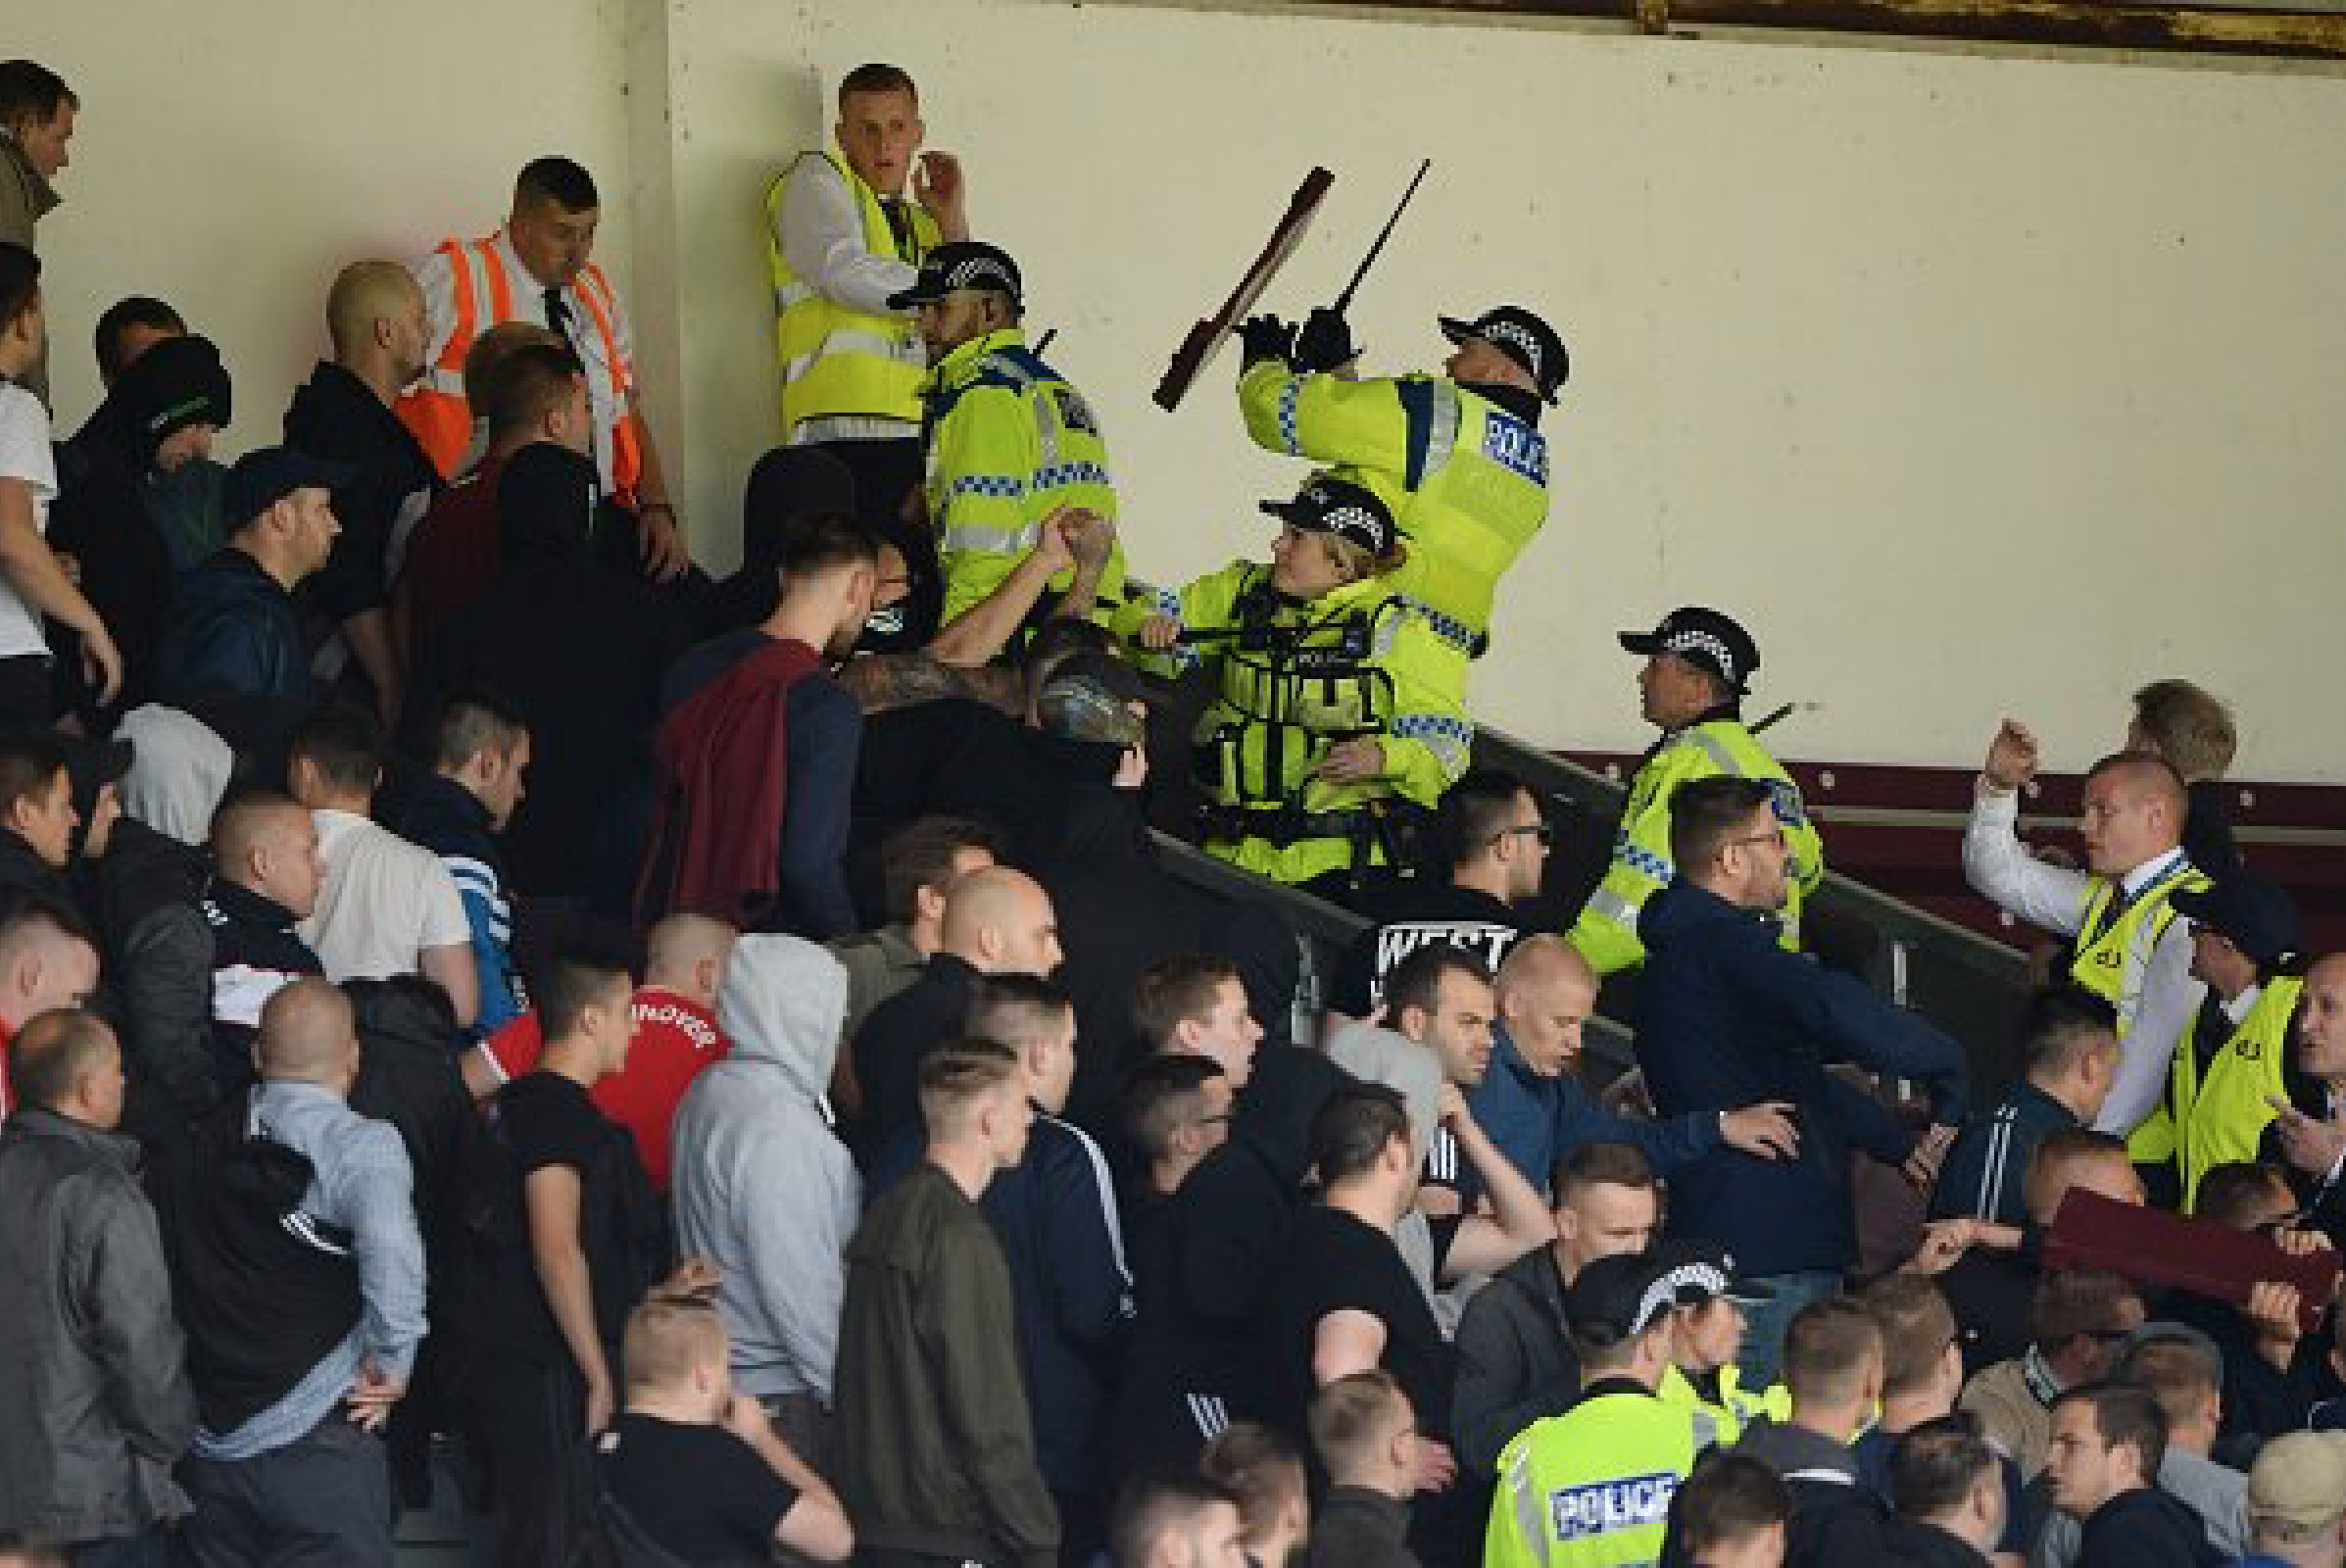 Burnley vs Hannover Has Been Abandoned On Police Advise For The Crowd's Safety